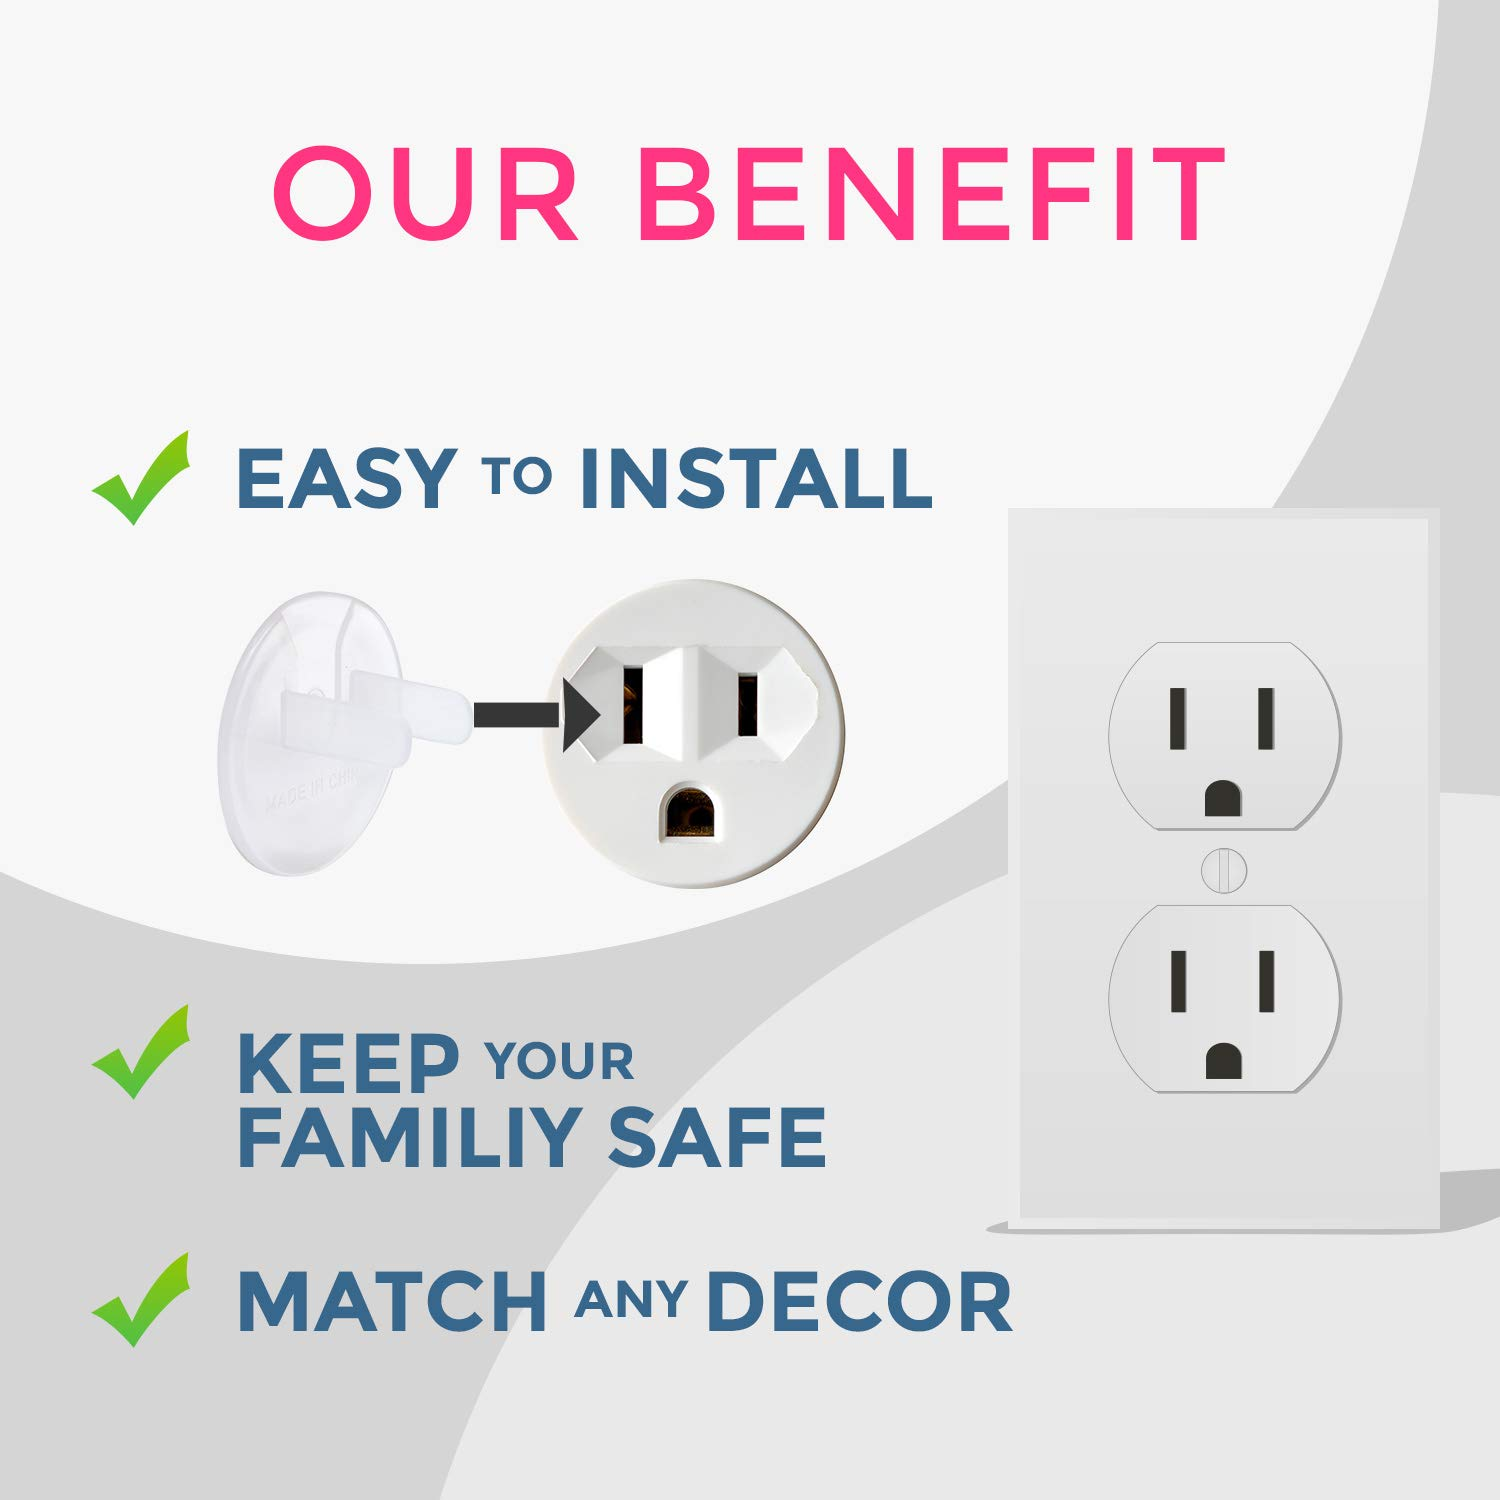 Sturdy Plug Protectors by Baby Tales Bonus Door Pinch Guard Large Outlet Plugs Covers Baby Safety Clear Electric Outlet Covers Baby Proofing 40-Pack Tight Sure Fit Child Proofing Socket Covers